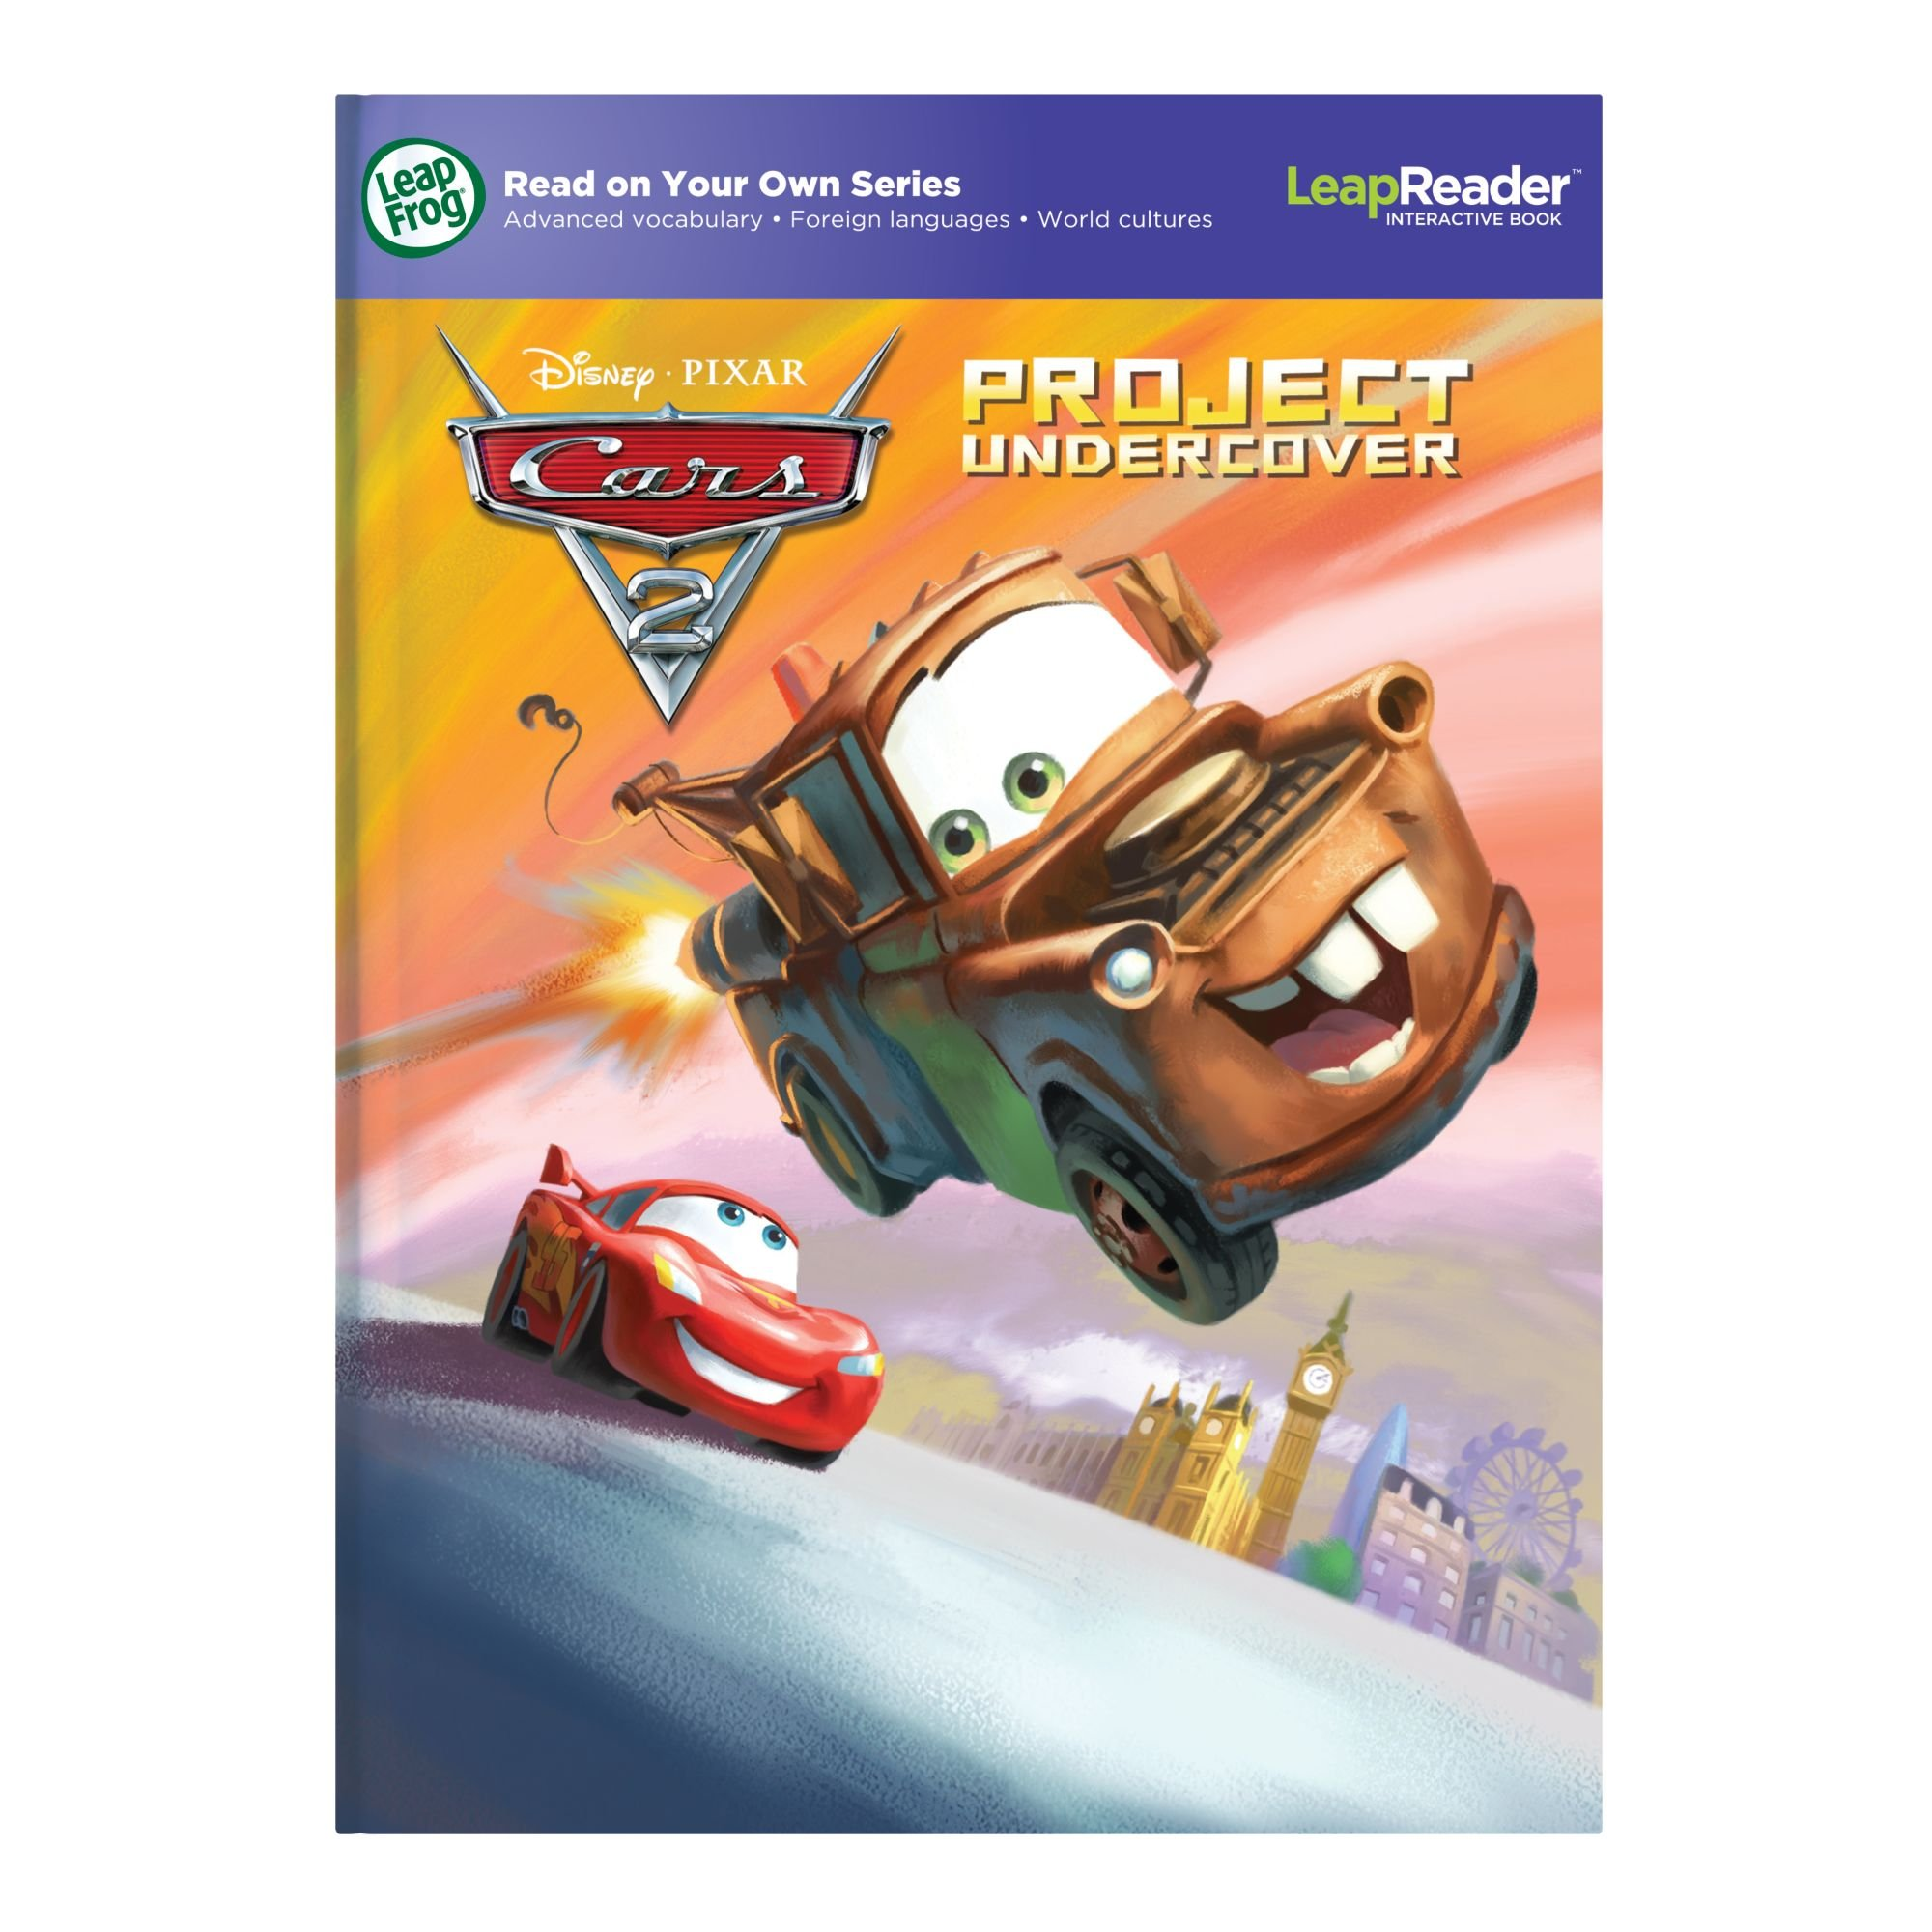 LeapFrog LeapReader Book: Disney/Pixar Cars 2: Project Undercover (works with Tag) by LeapFrog (Image #5)